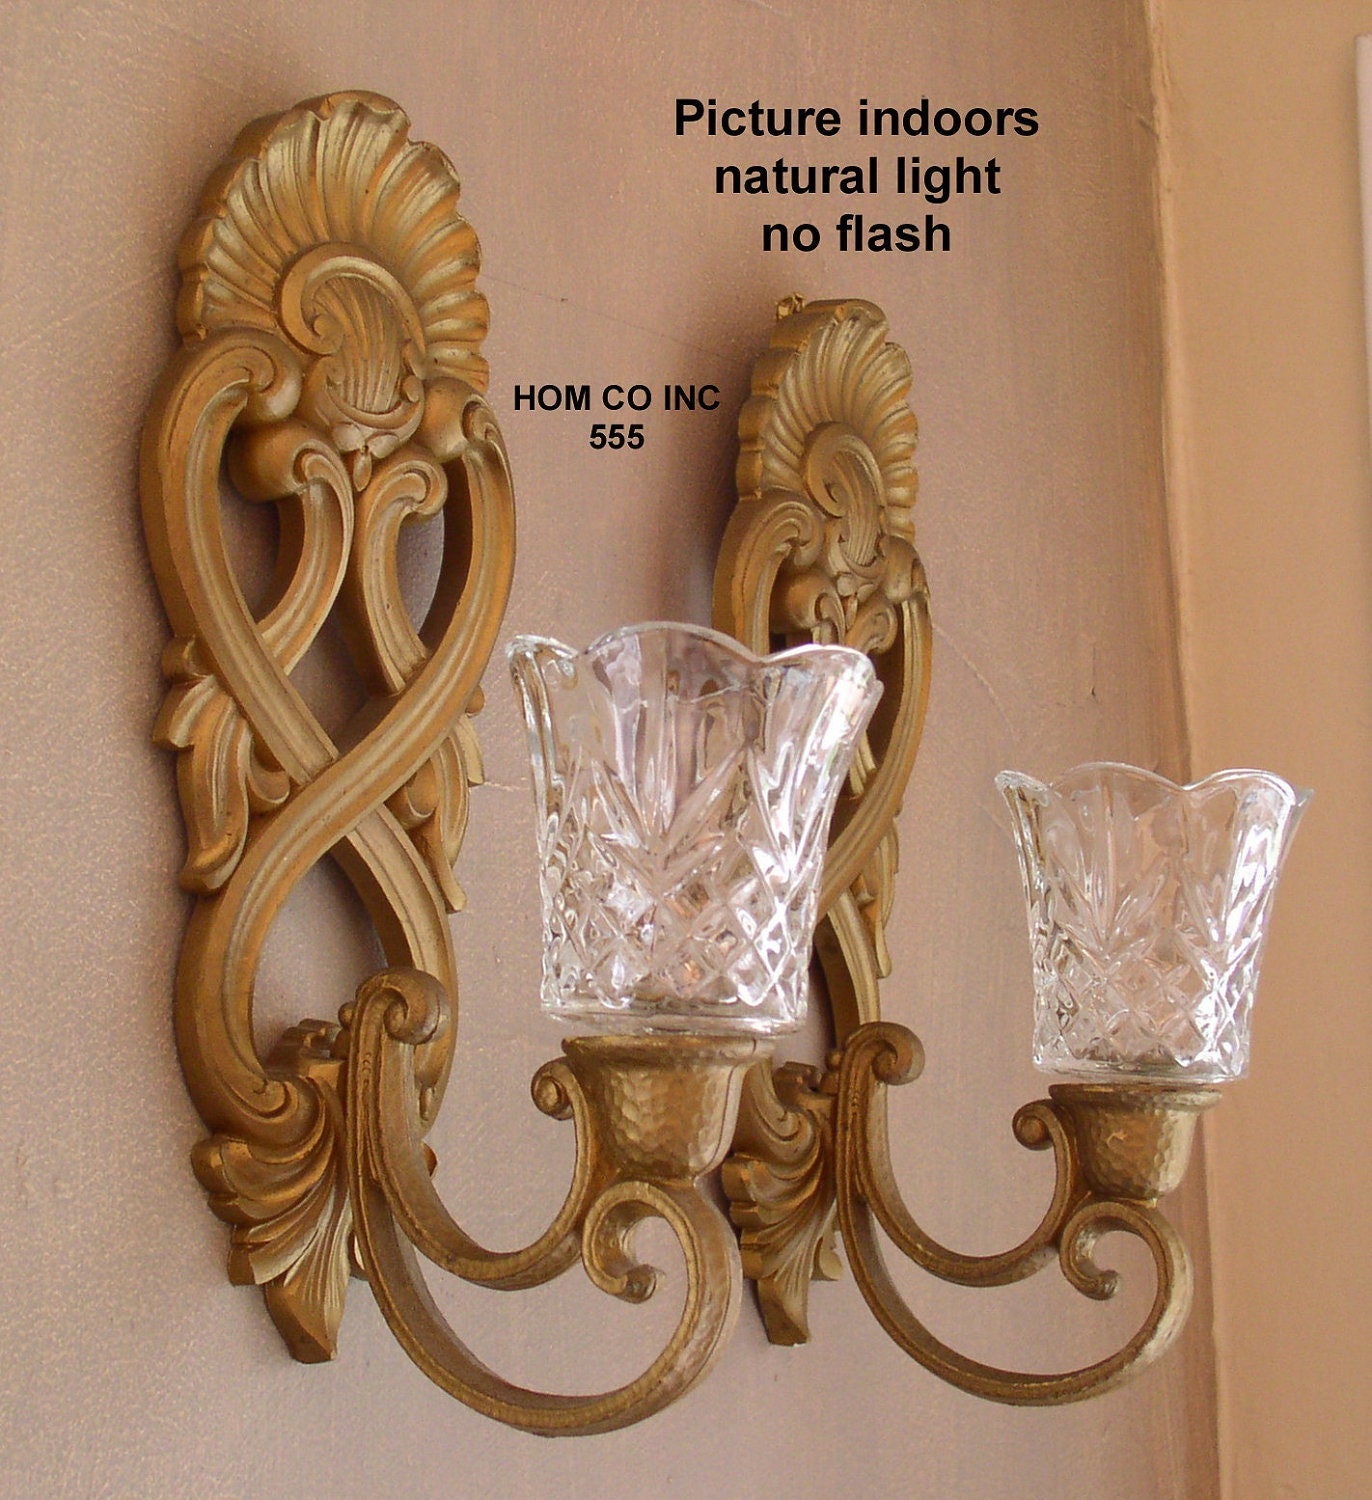 Wall Sconces Near Tv : Vintage Scroll Wall Sconce Candle Holder with Glass Inserts